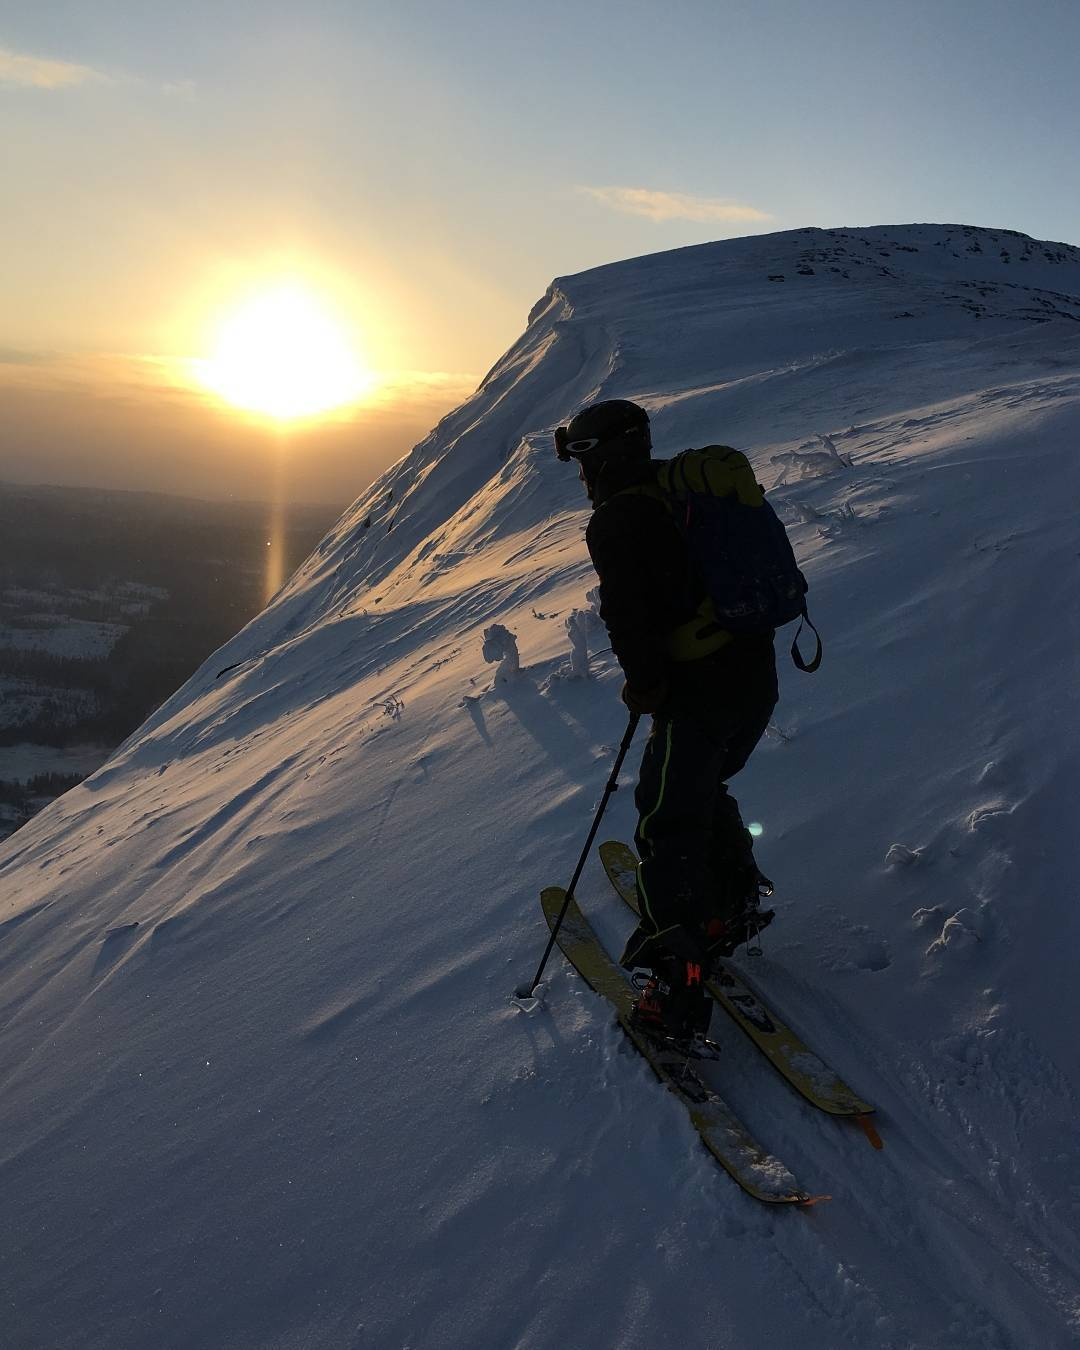 This time of year the sun barely crests much higher than a sunrise/sunset in Åre, Sweden. Magnus Kihlstedt doesn't seem to mind if the touring is super nice, even if it is -23 degrees Celsius. Photo: Harald Hammar. #DPSEurope #backcountry #skiing